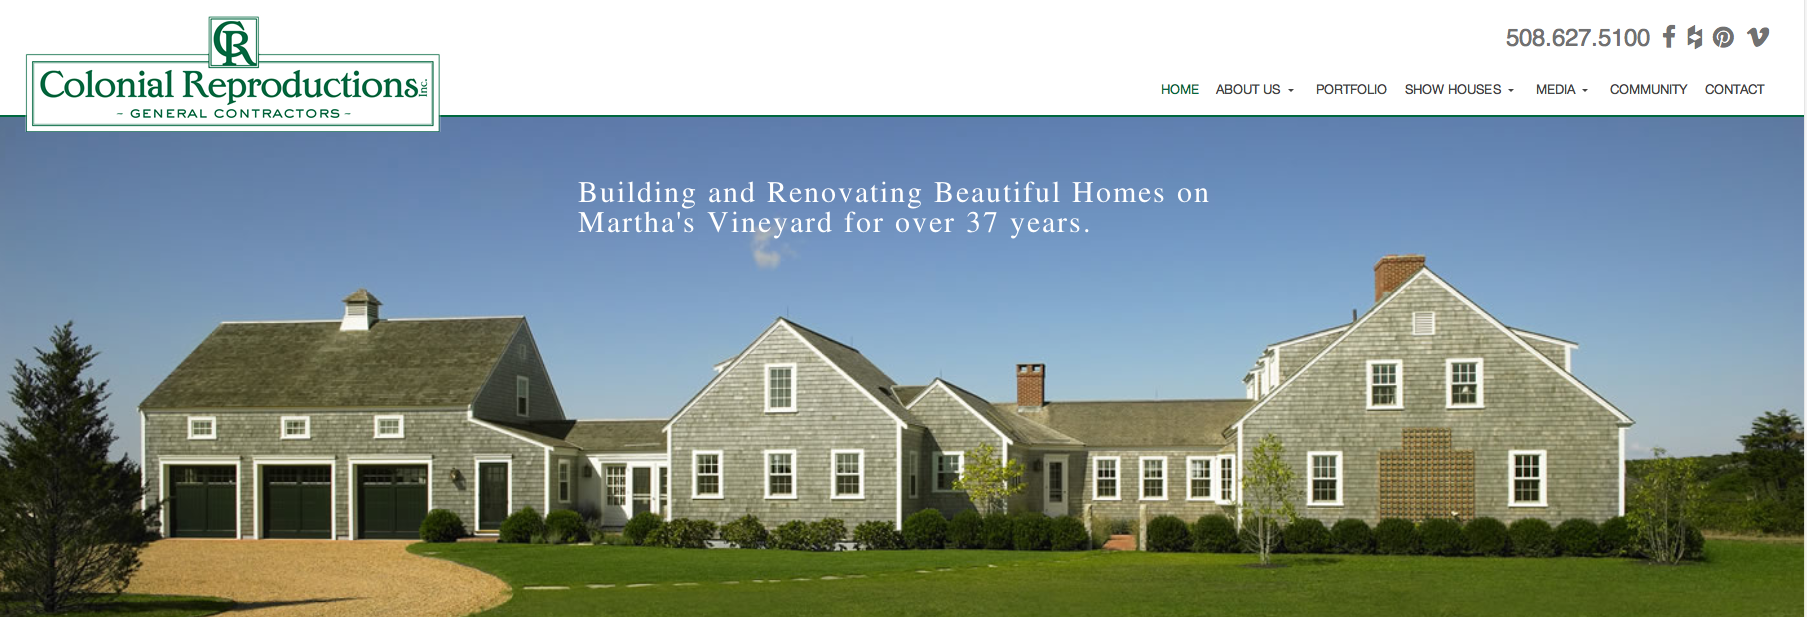 Colonial Reproductions High End Custom Home Builders In